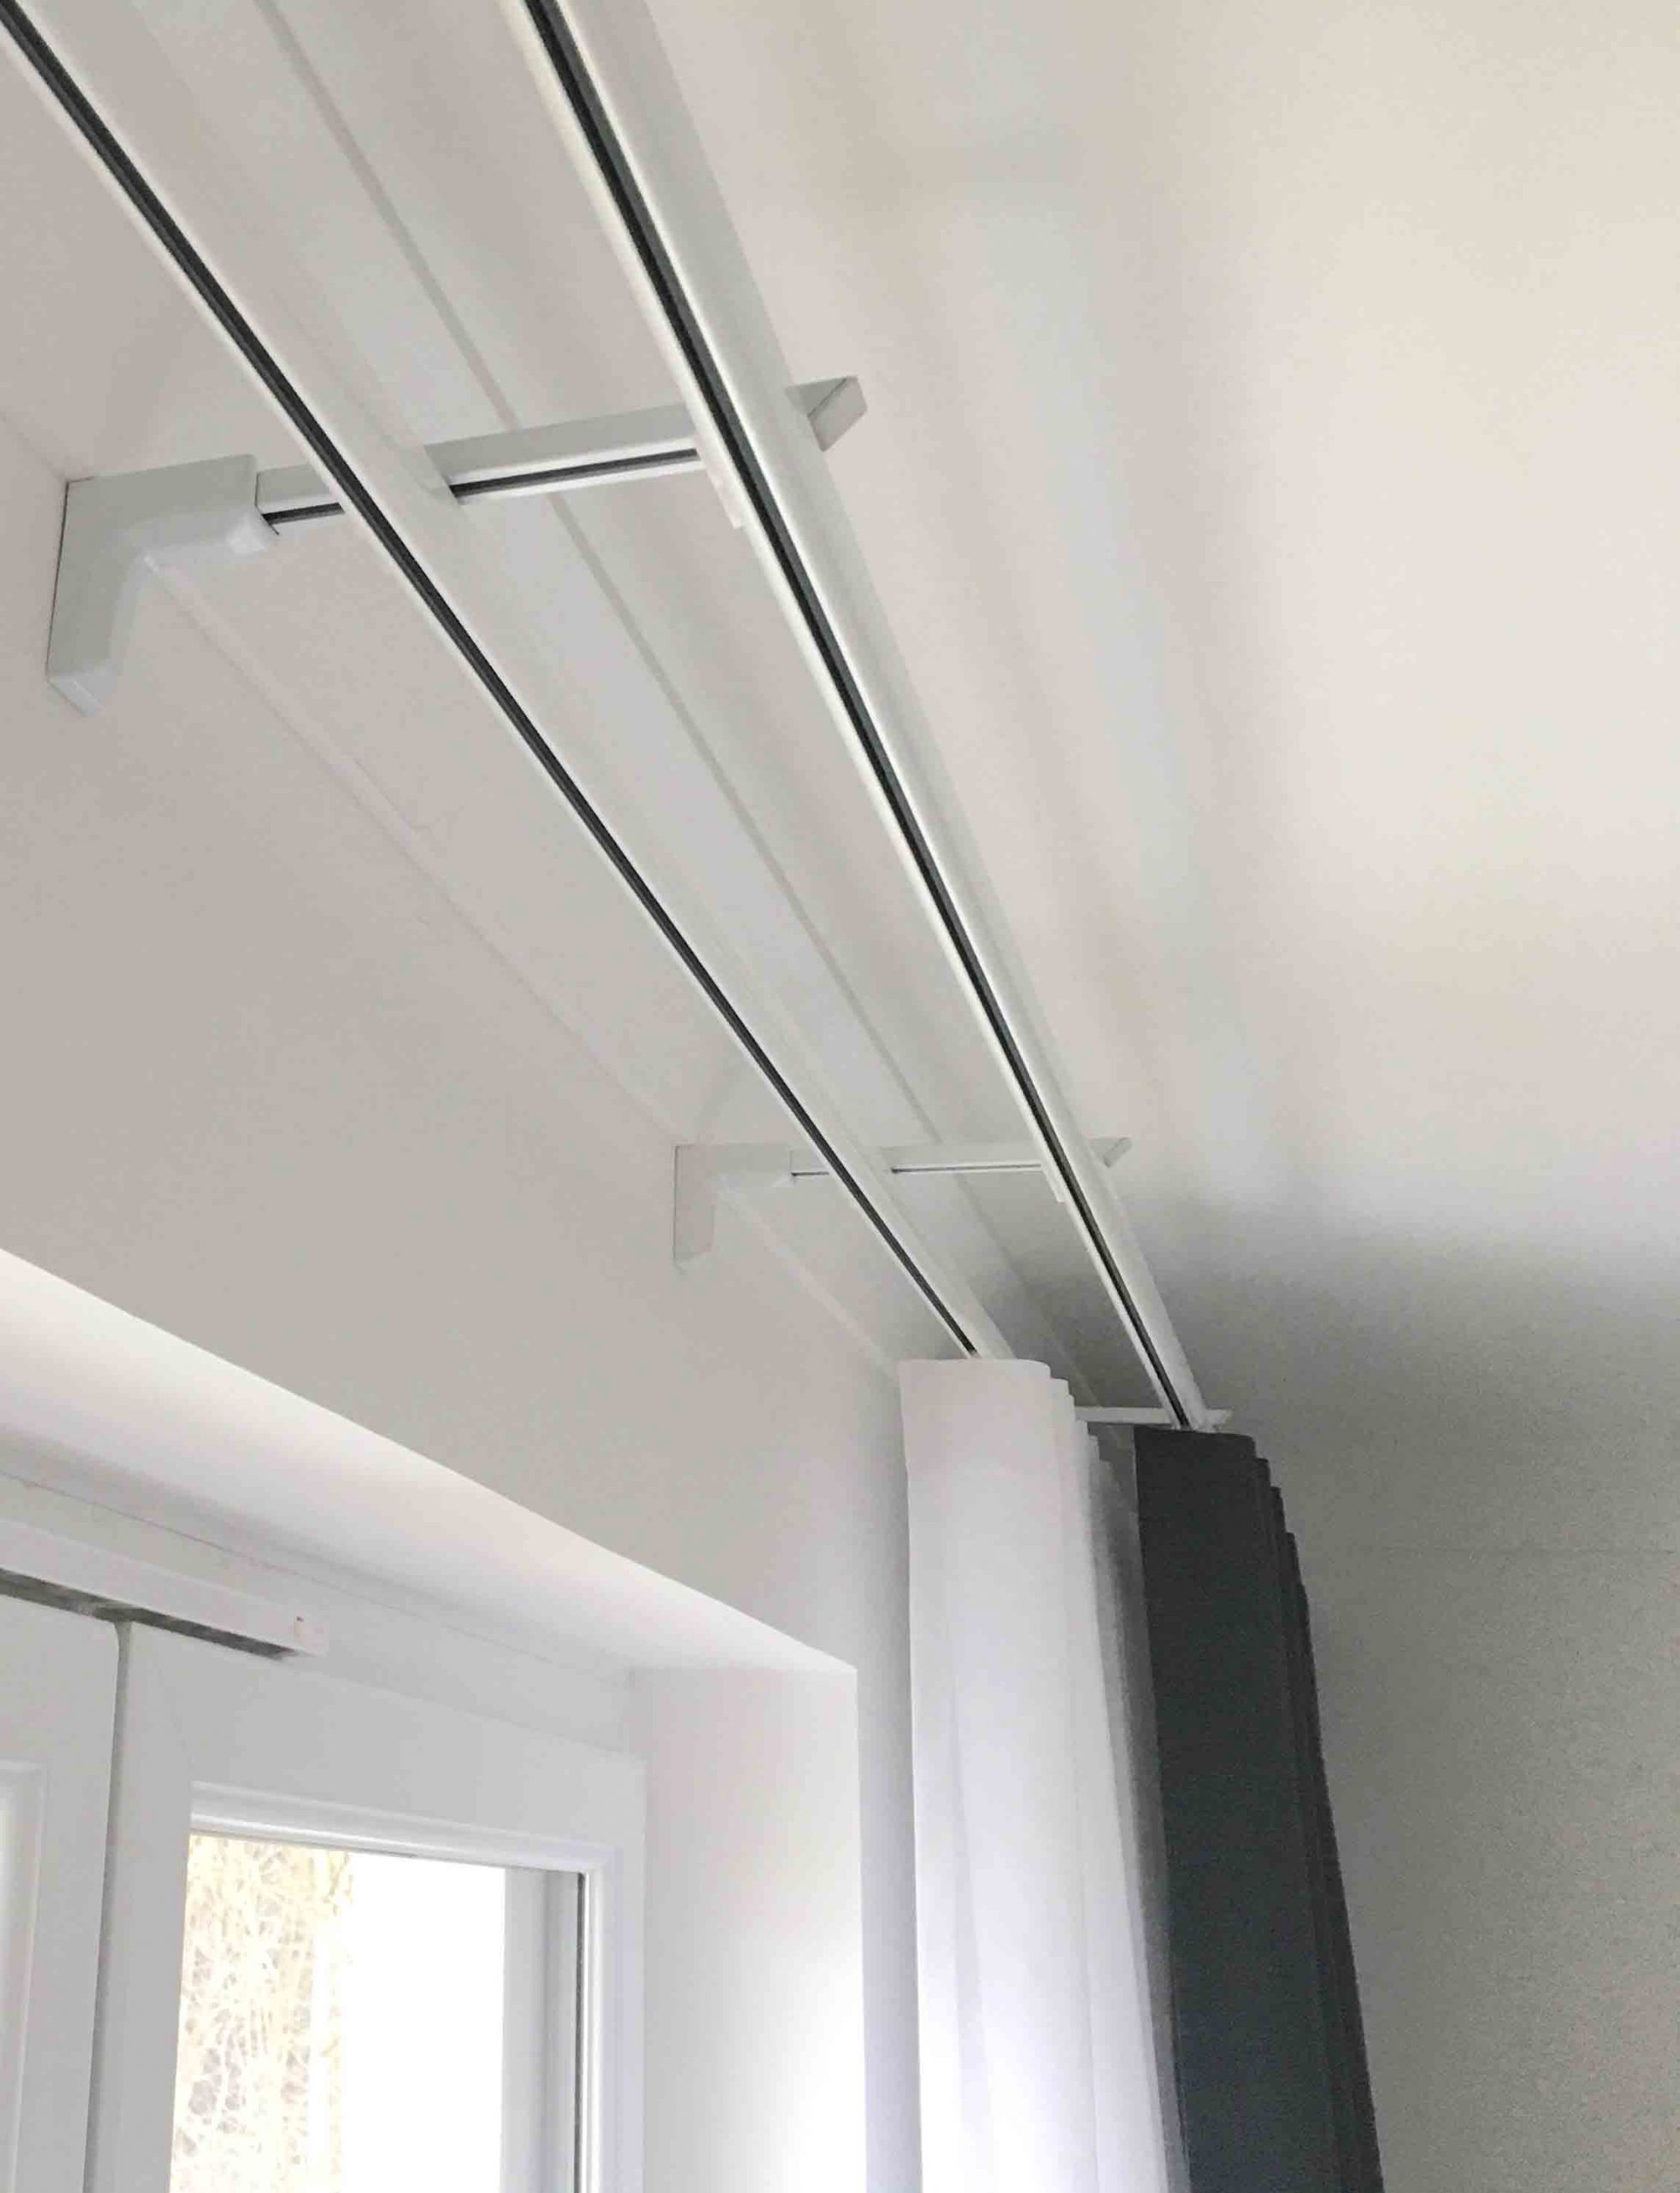 silent gliss double track 6840 6840 wave glider curtain track system